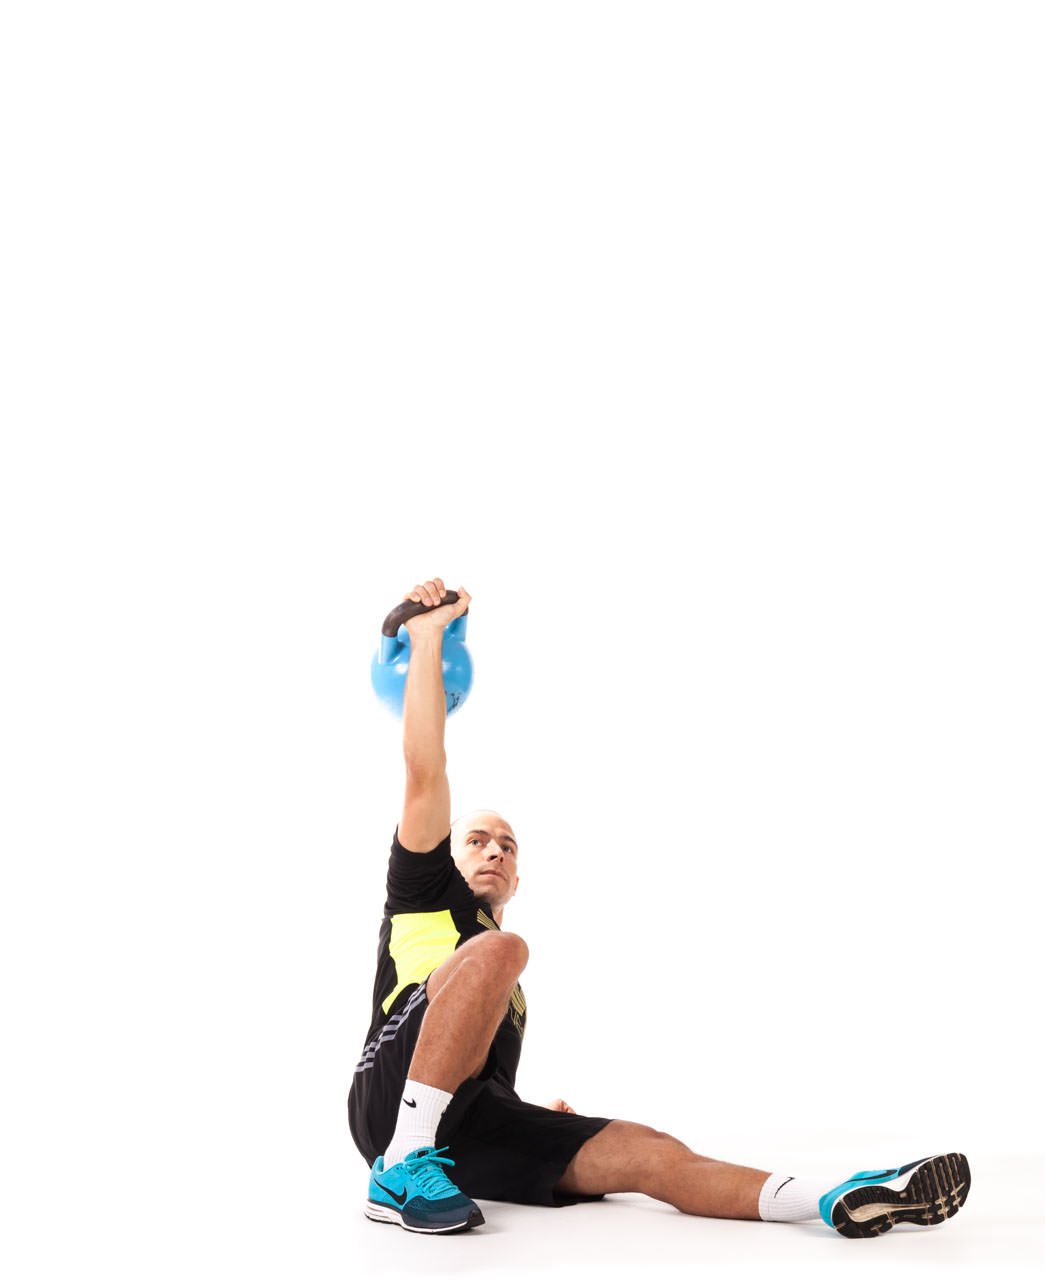 Kettlebell Turkish Get Up frame #10